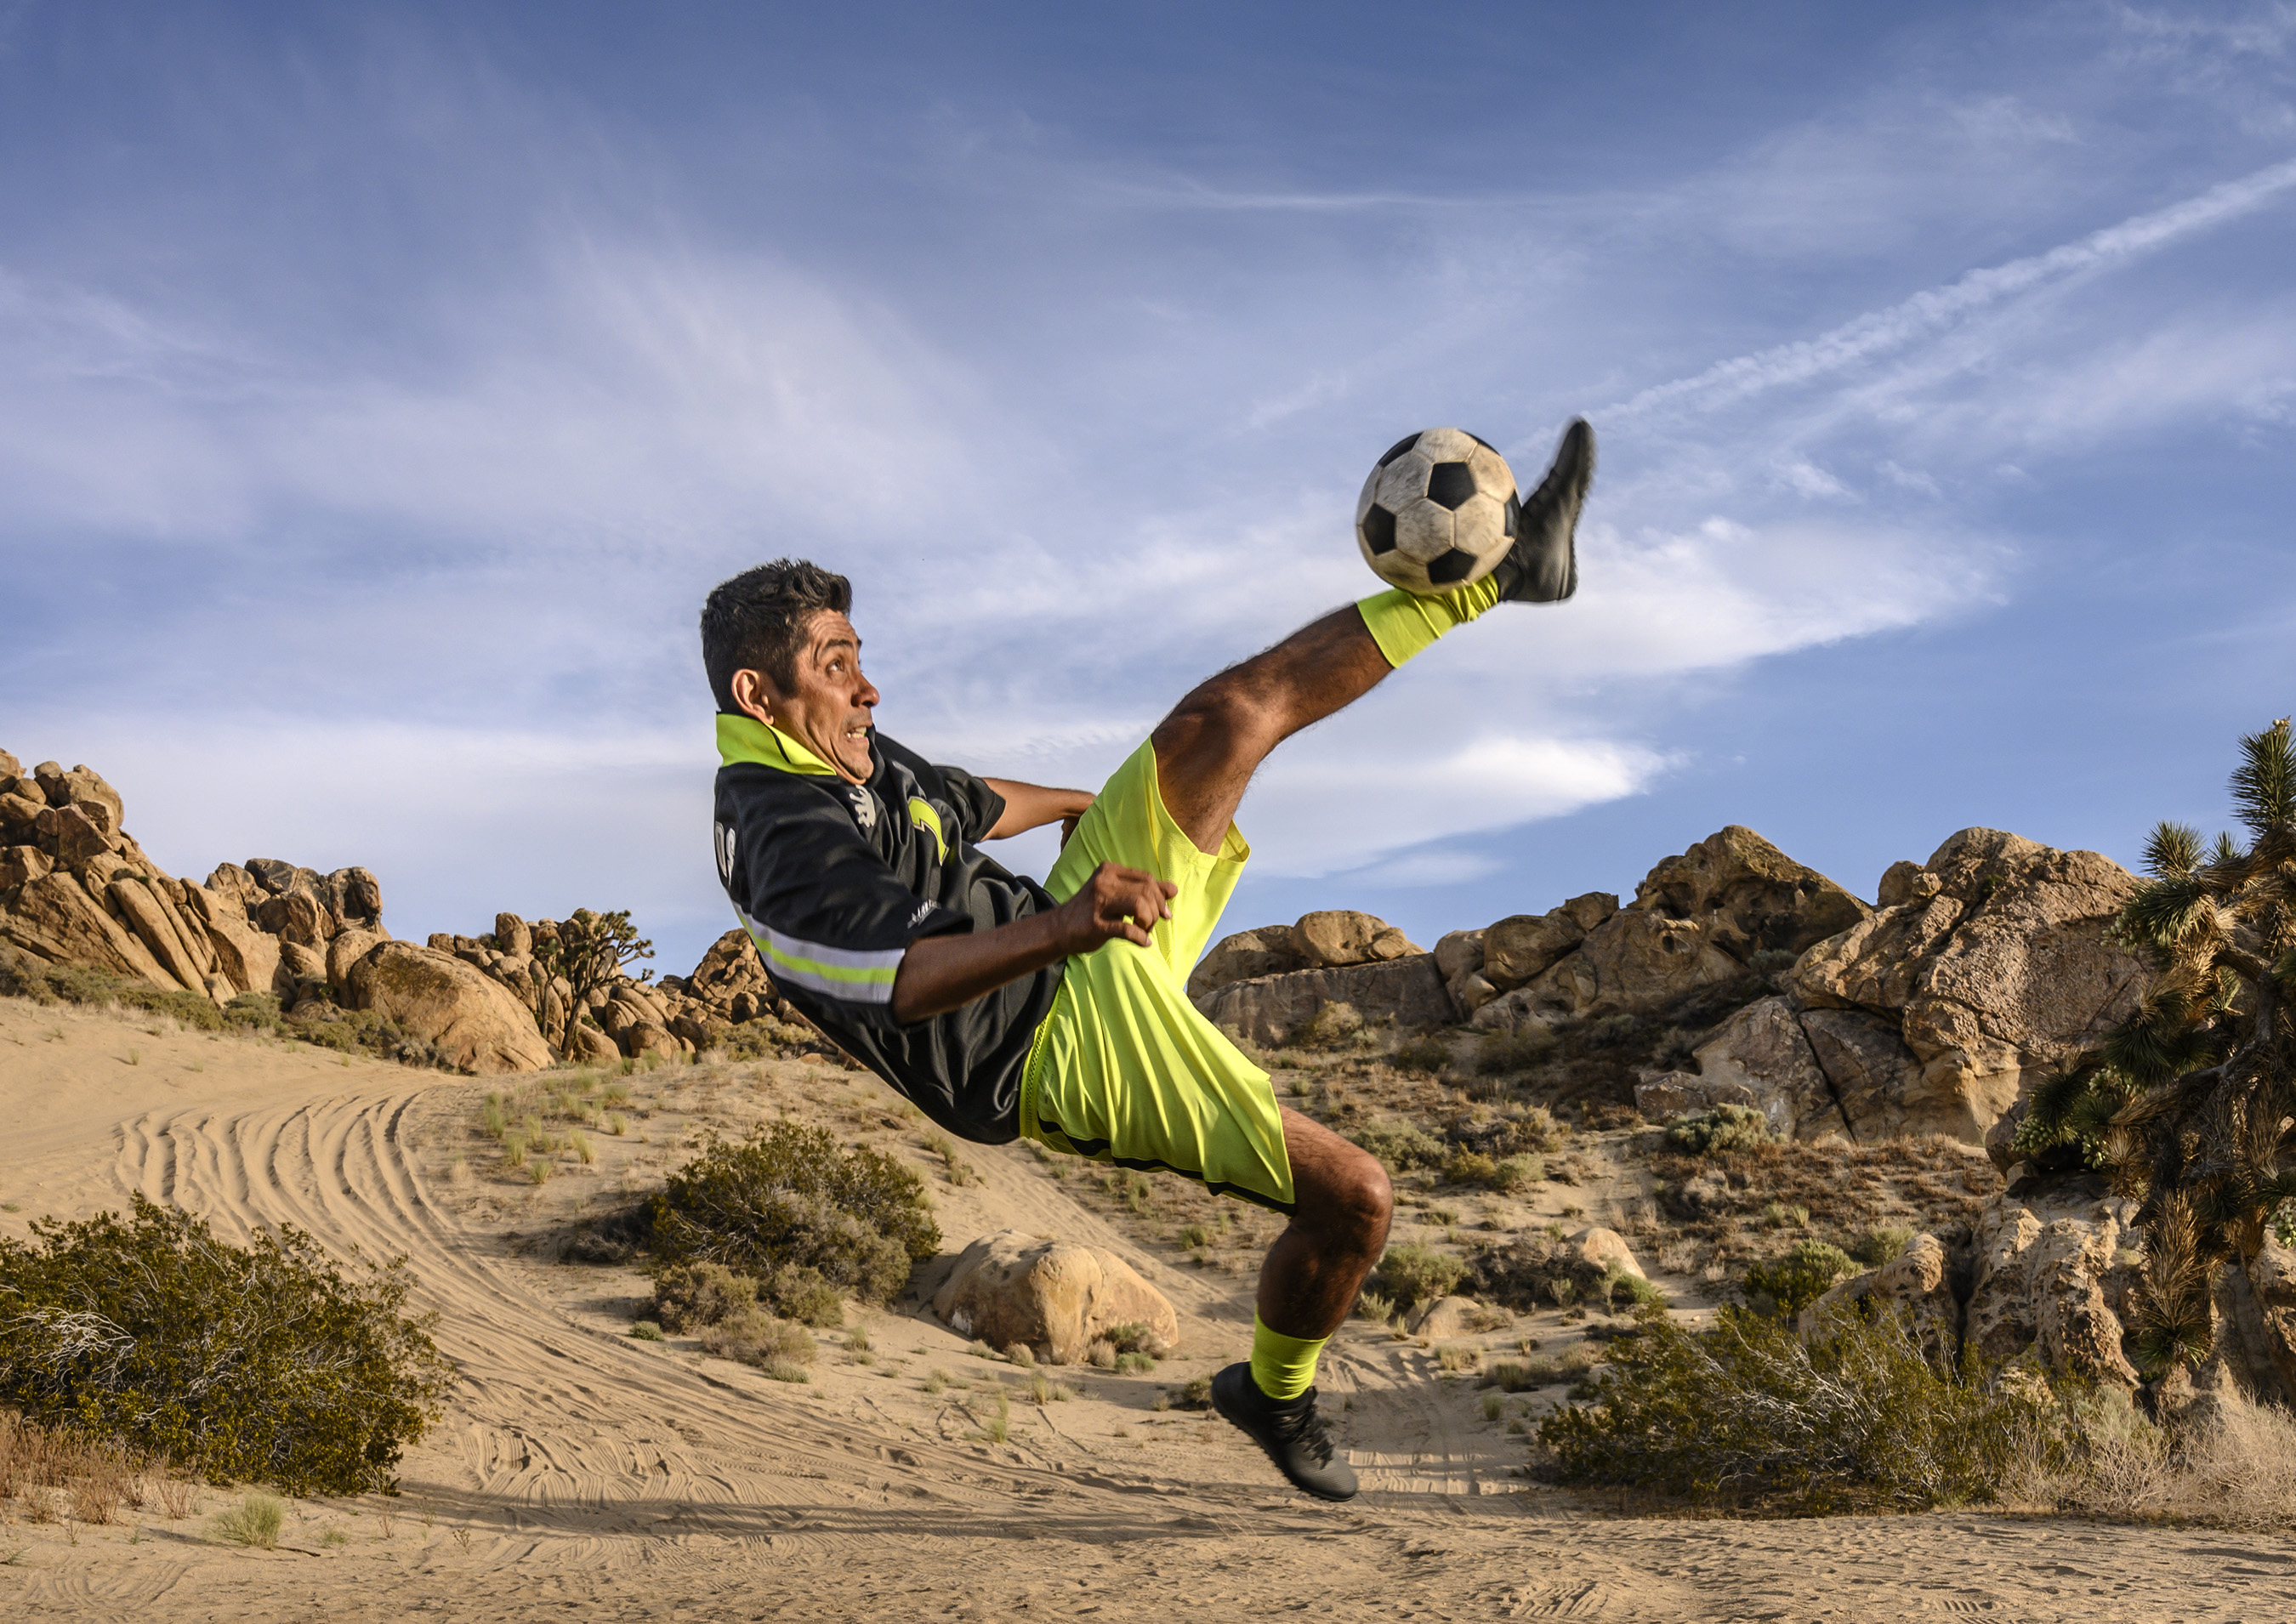 Mexican soccer legend, Jorge Campos, shows off his acrobatic skills on even the toughest of terrains.